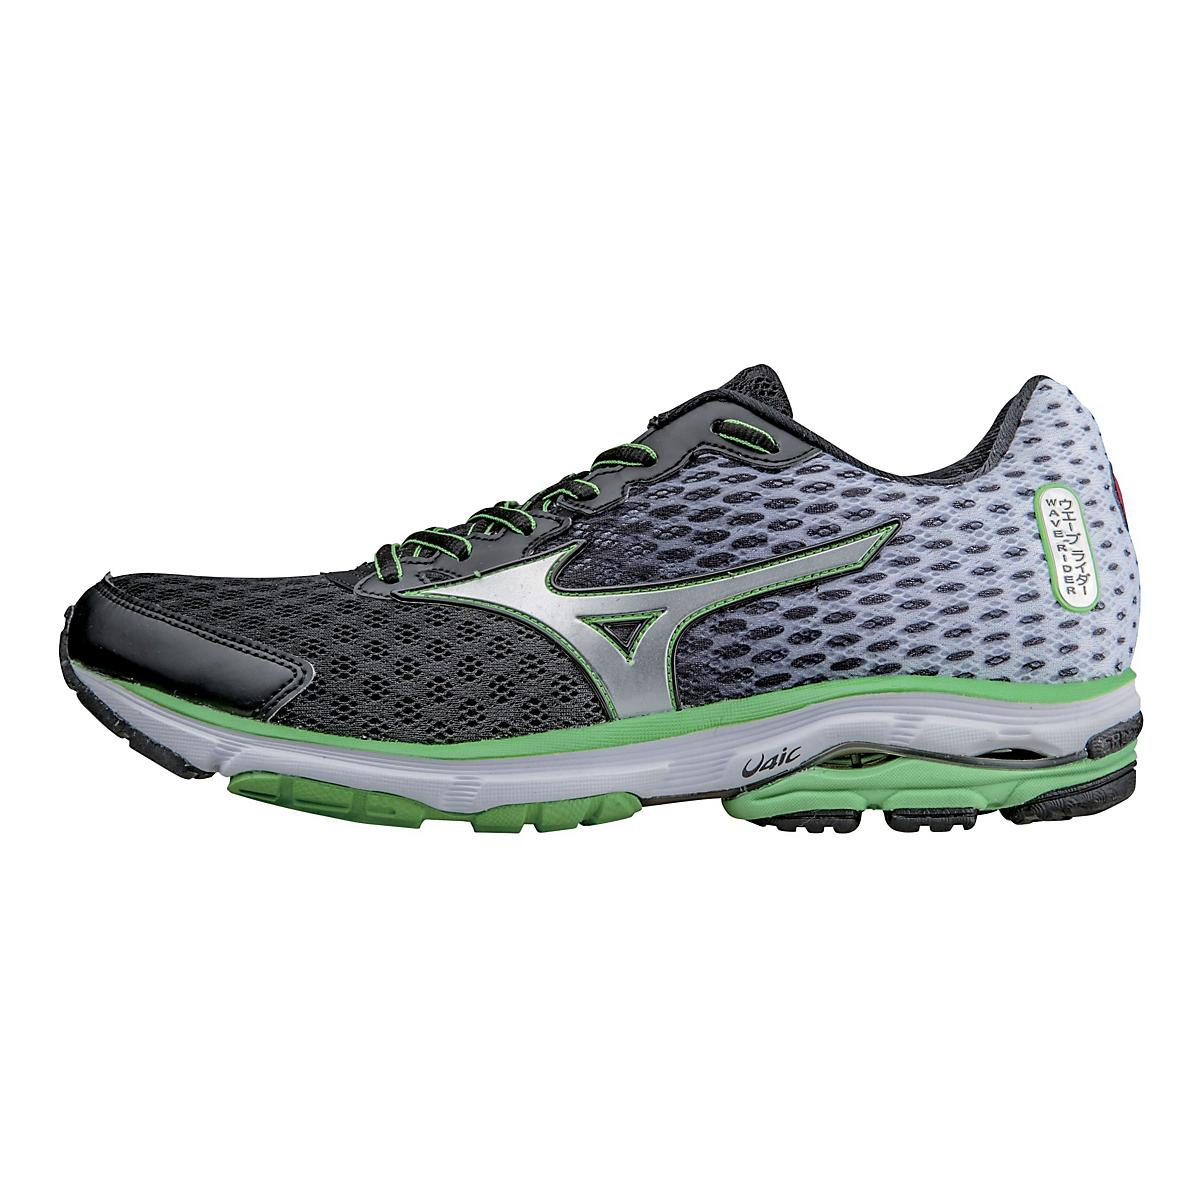 e4ad18ae Mens Mizuno Wave Rider 18 Running Shoe at Road Runner Sports